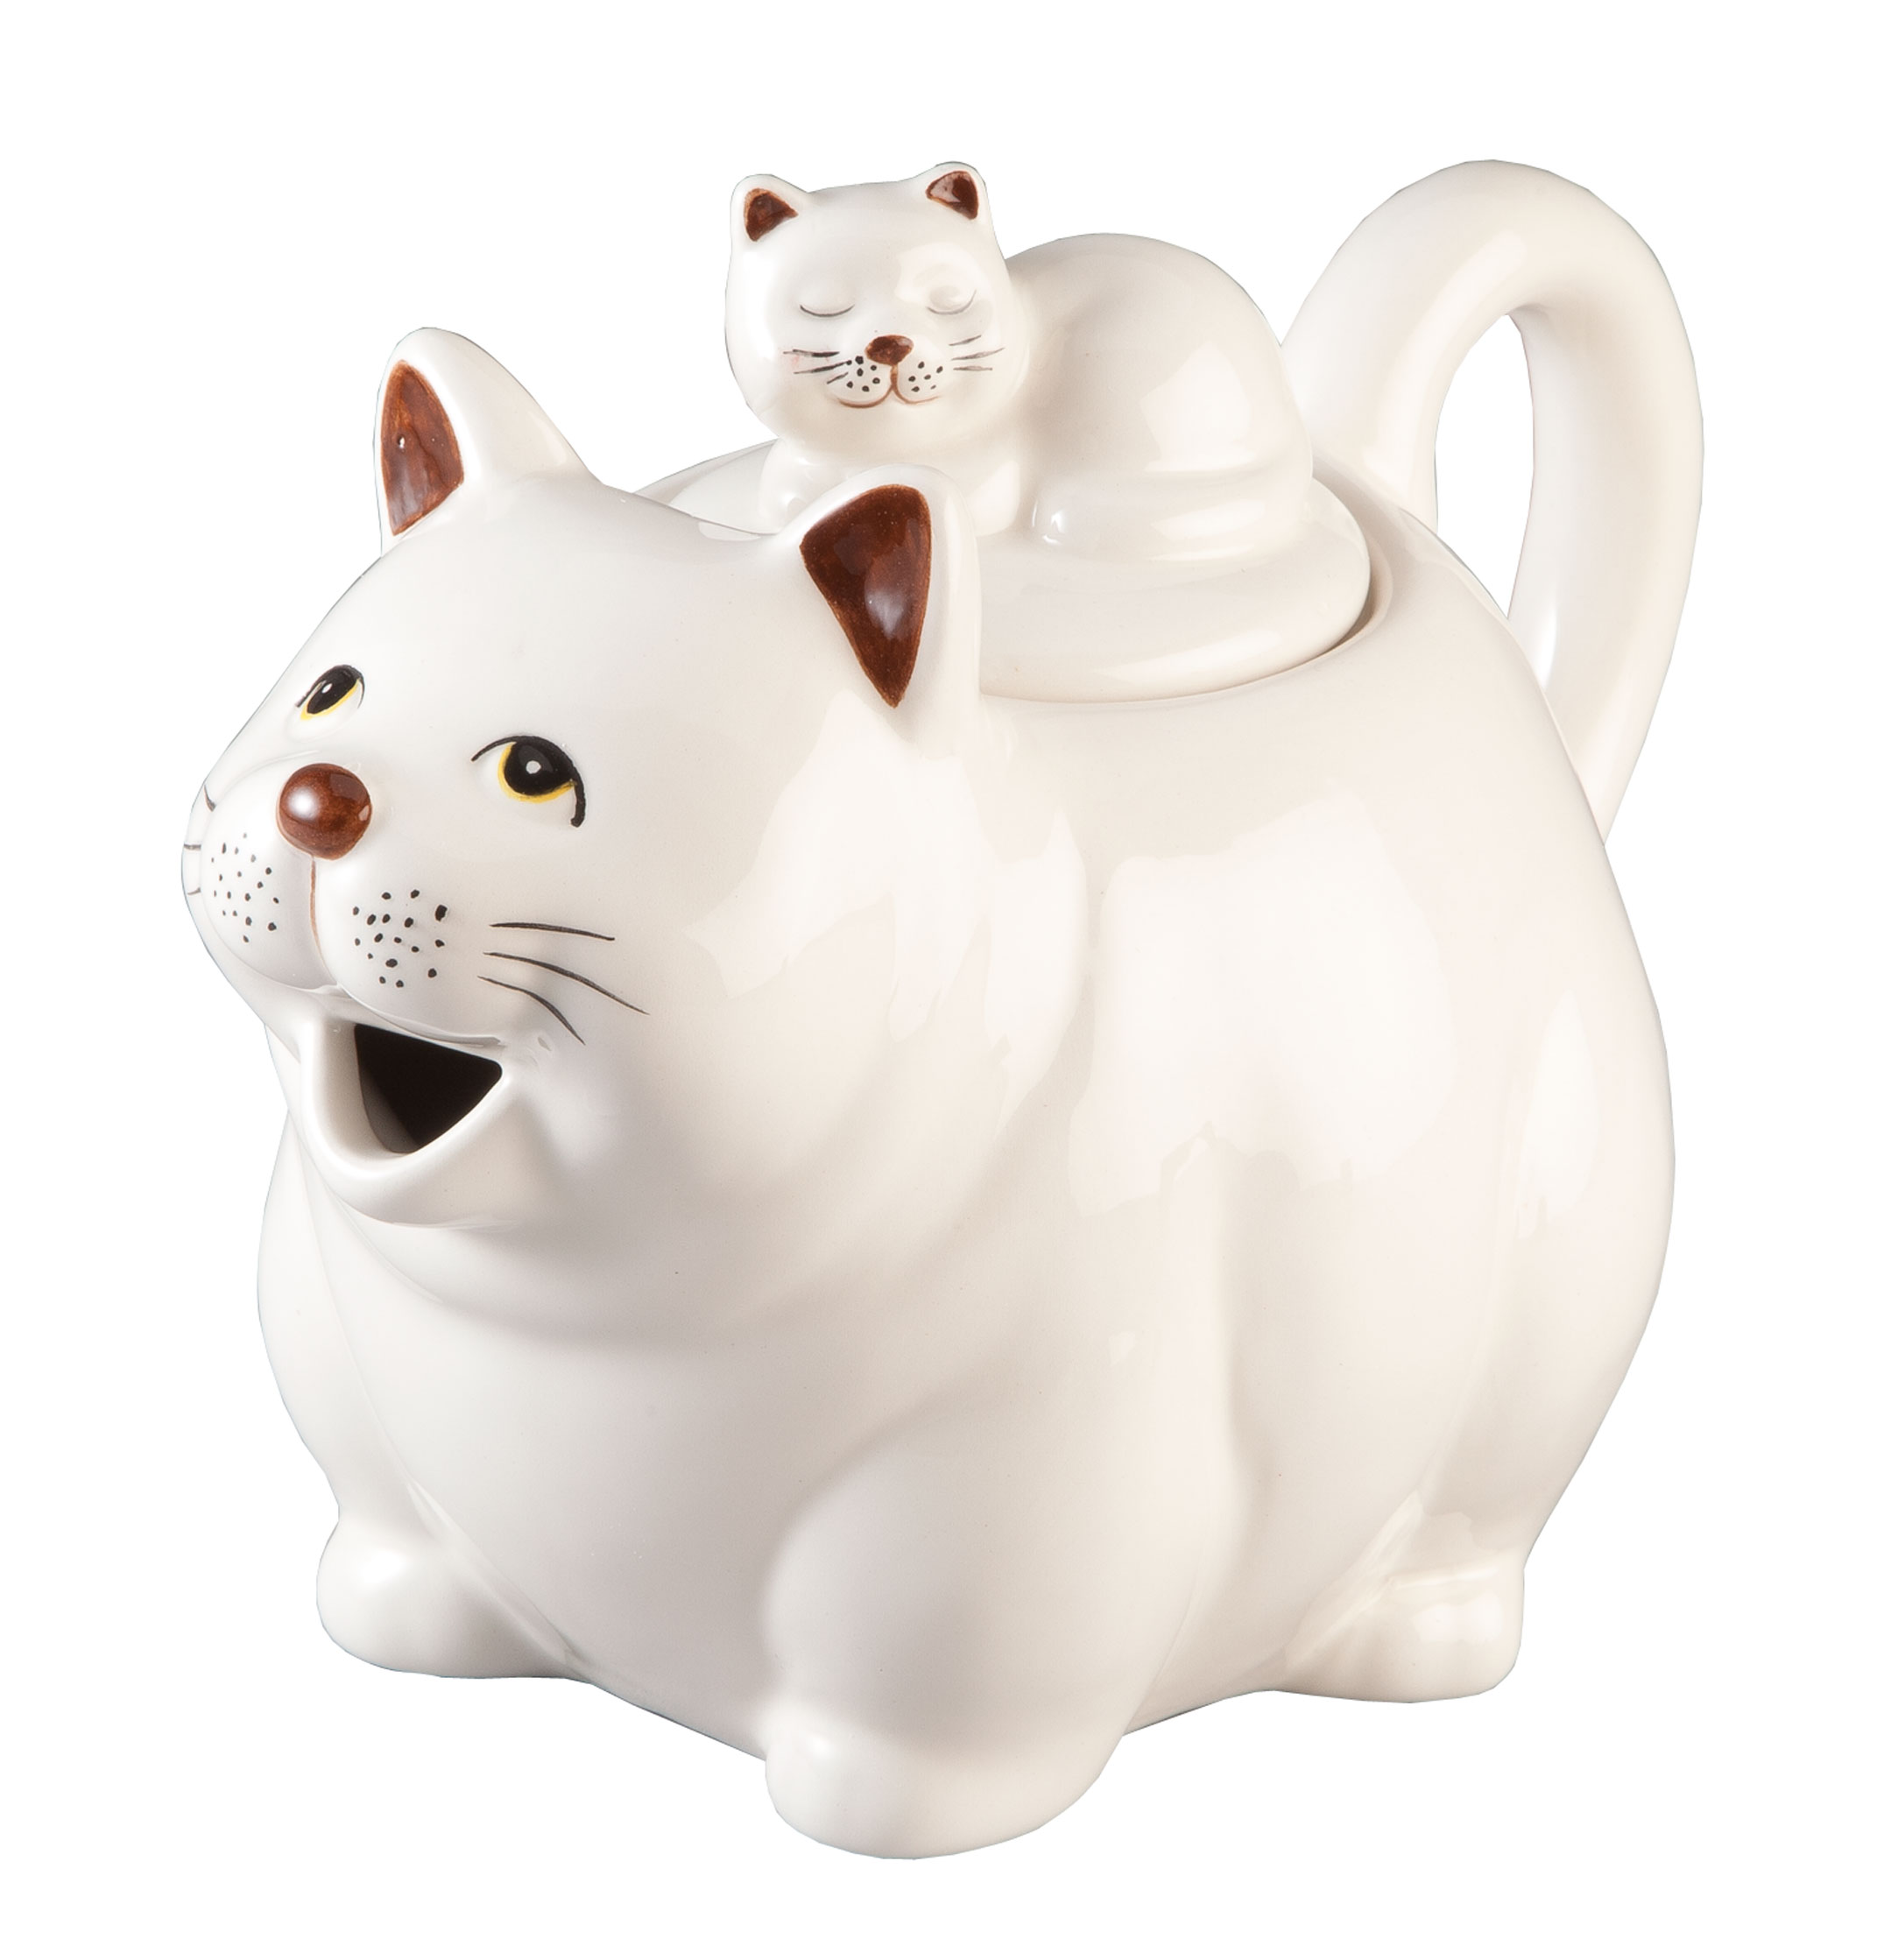 Cat Teapot by Home-Style Kitchen Serving tea in whimsical style, this cat teapot by Home-Style KitchenTM pours from her open mouth, while her curved tail forms a cute, sturdy handle. With another napping kitten curled up on the lid, our ceramic teapot shines in handpainted ceramic. Fun, functional and cute for display, it's a great gift for any cat lover or teapot collector! Small teapot measures 7 1/2  L x 5  W x 5 3/4  H. Hand wash.